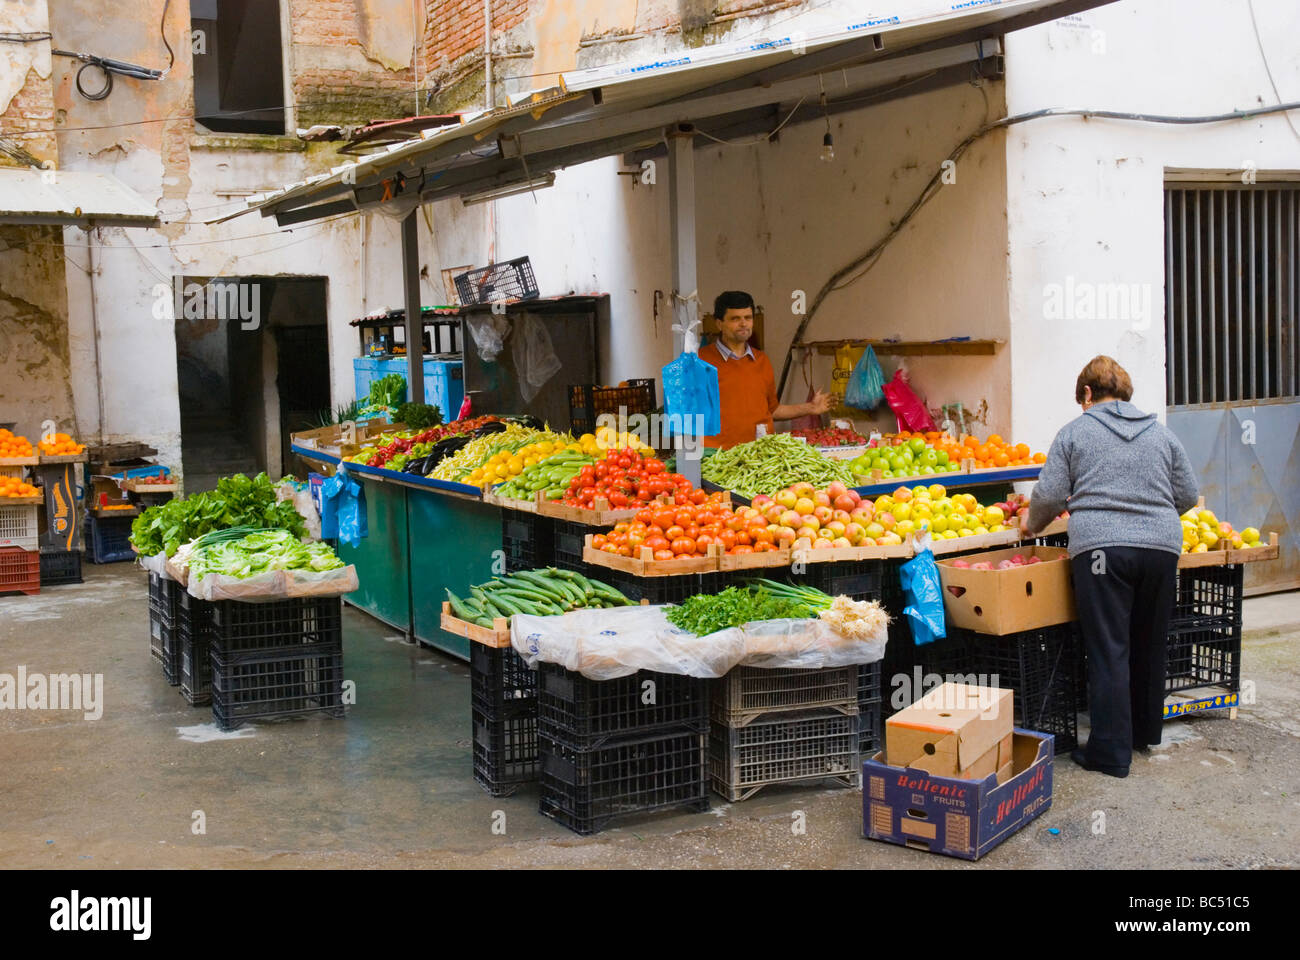 Market stalls in Blloku district of Tirana Albania Europe - Stock Image